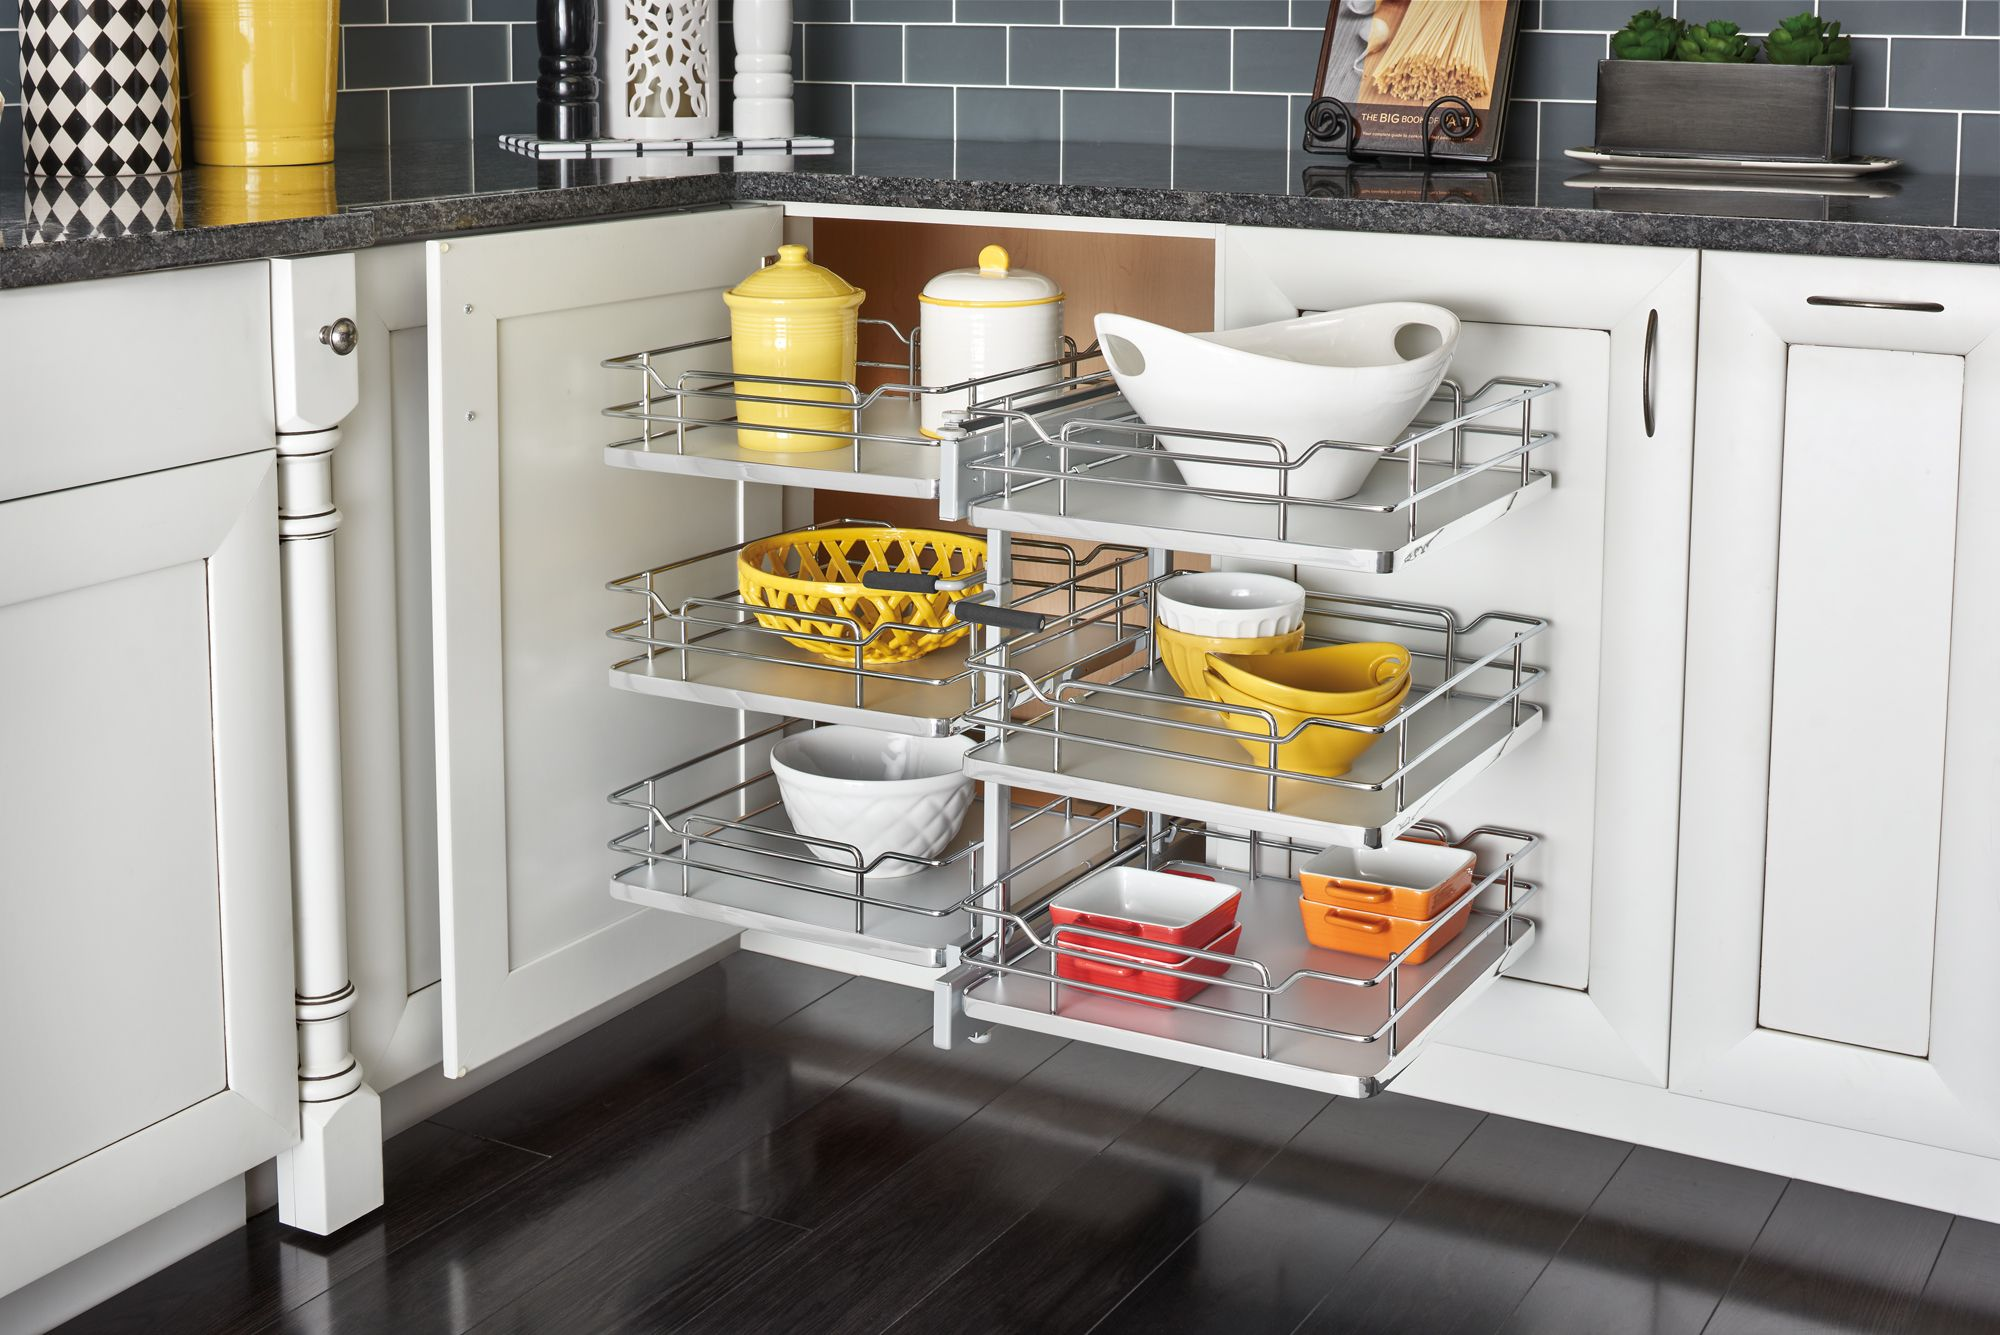 Maximize Your Blind Corner Storage Space And Make Deep Recesses More Accessible Wi Kitchen Cabinet Organization Layout Kitchen Cabinet Remodel Kitchen Cabinets